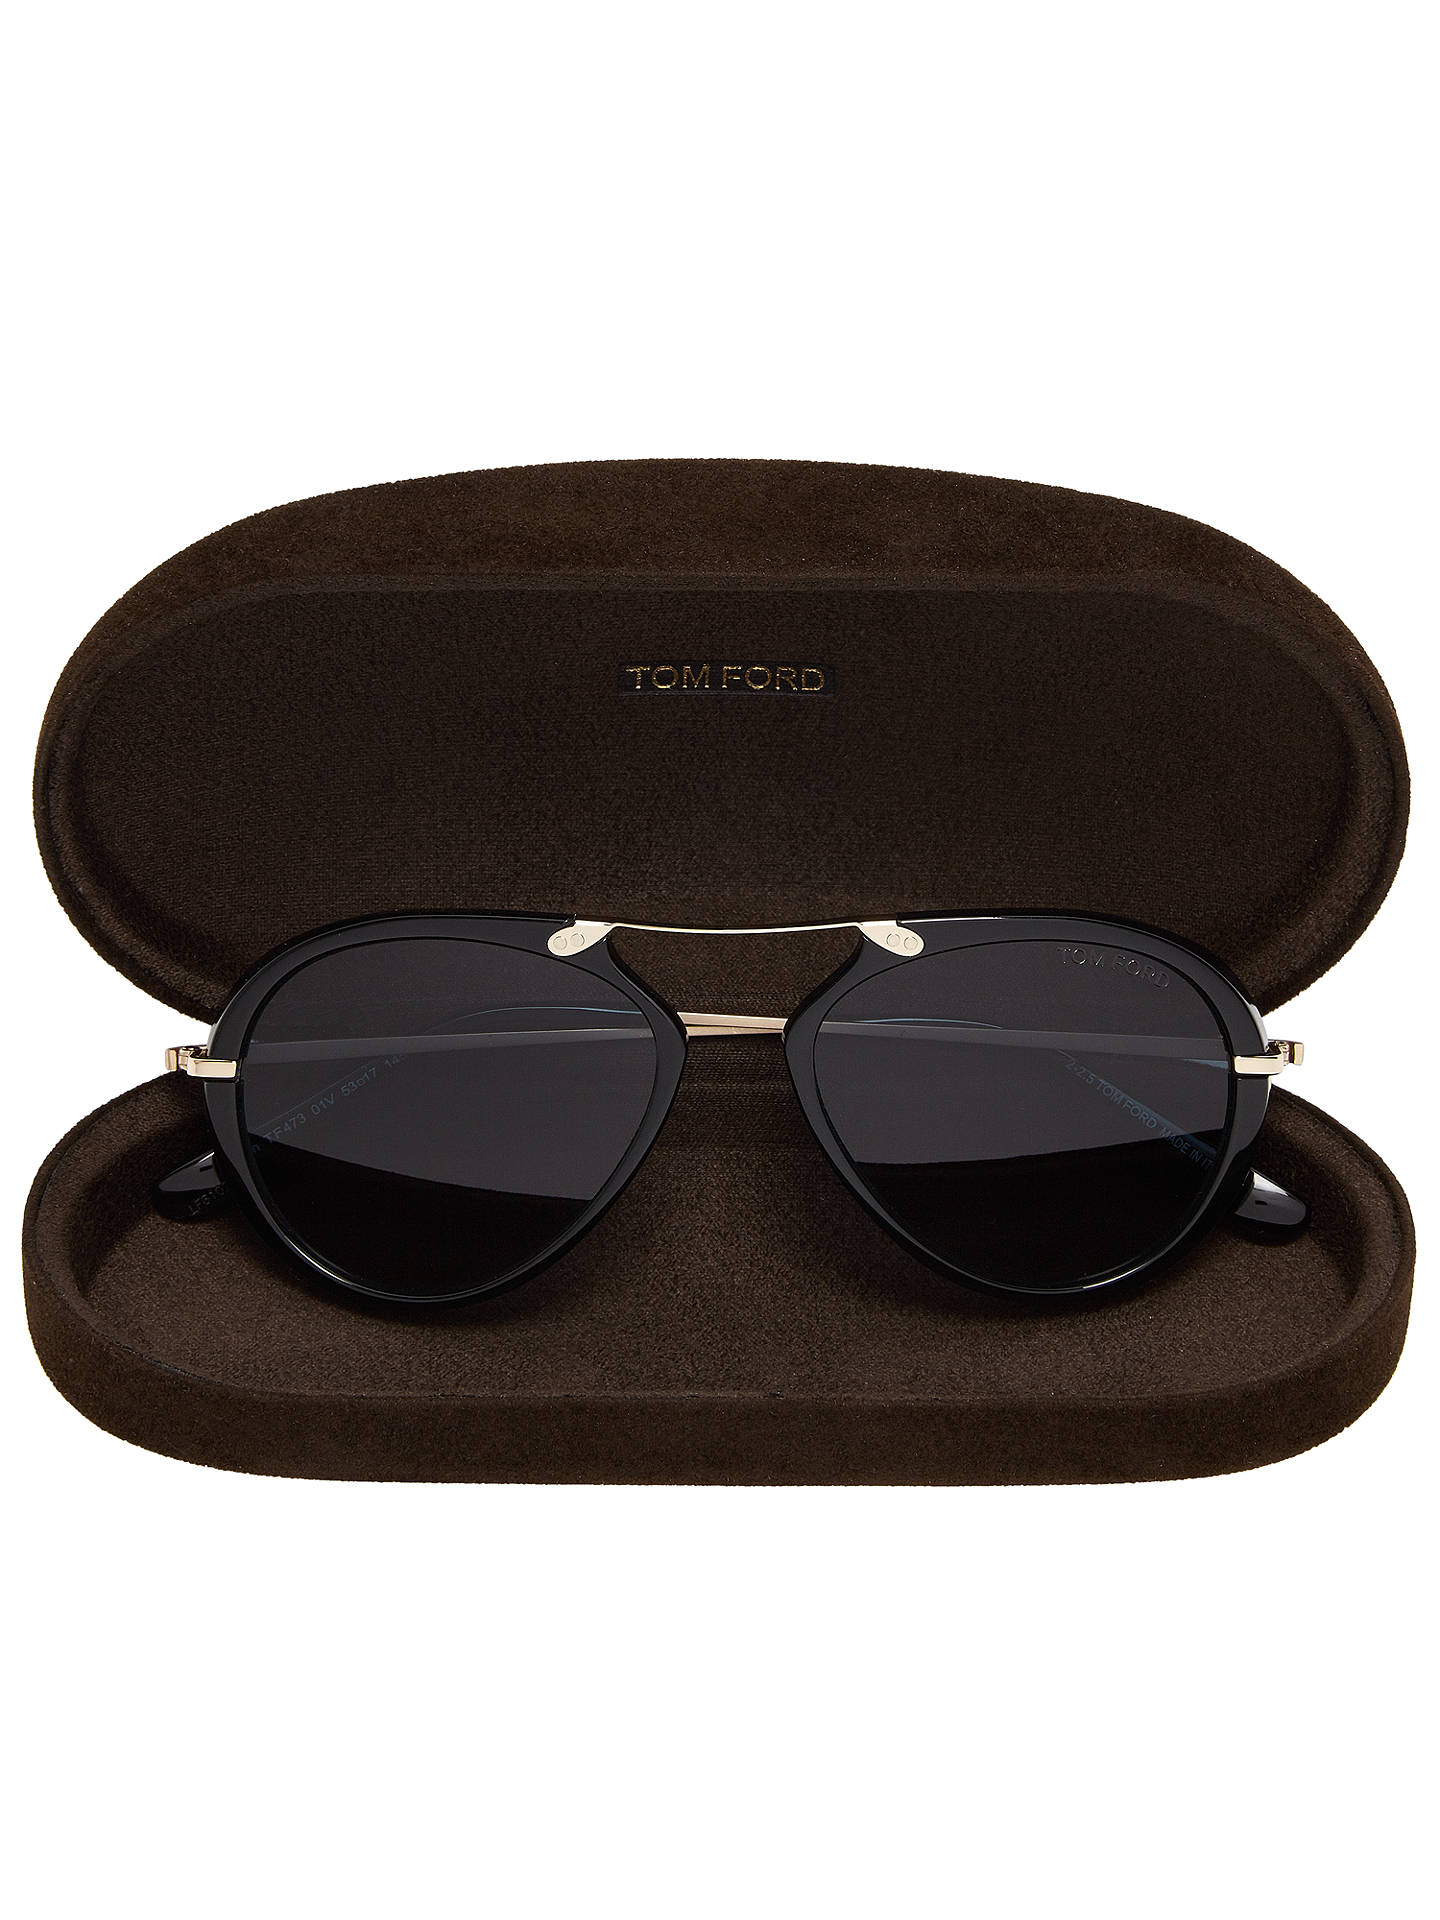 Buy TOM FORD FT0473 Aaron Aviator Sunglasses, Black/Blue Online at johnlewis.com